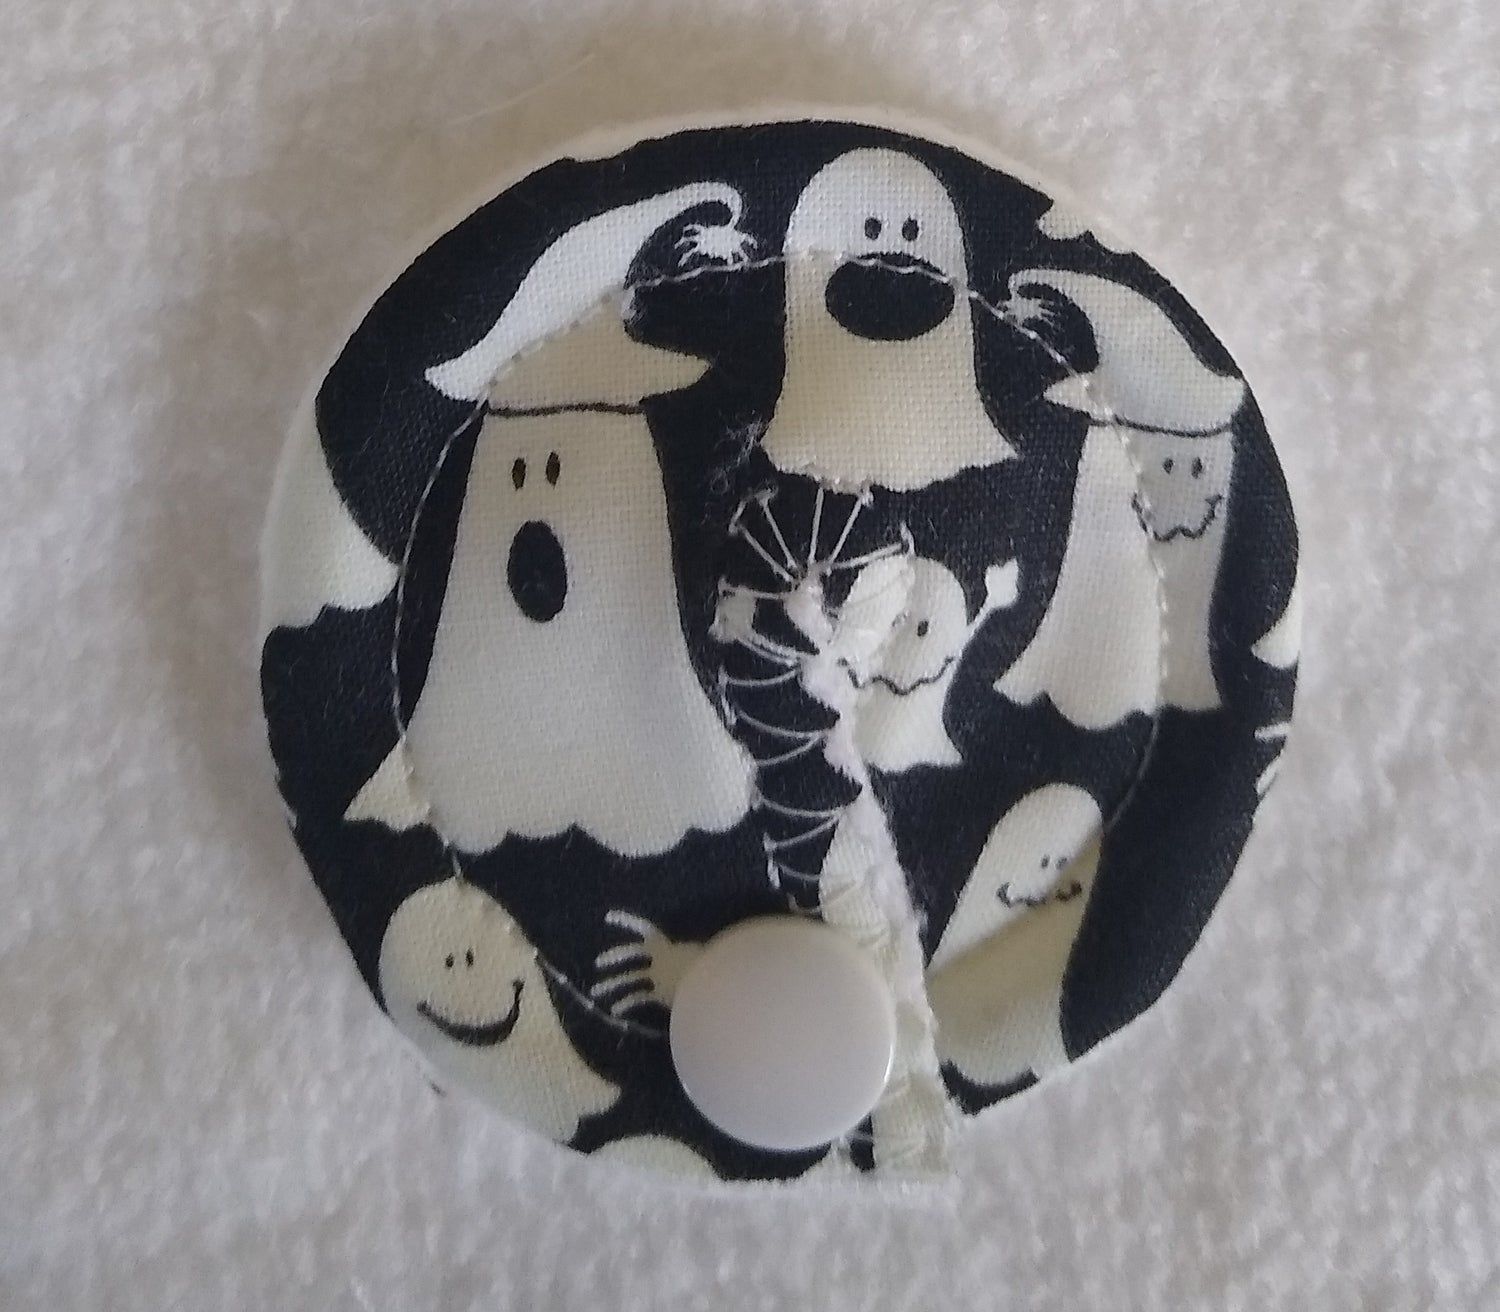 Image of Halloween Glow in the Dark Tubie Pads!